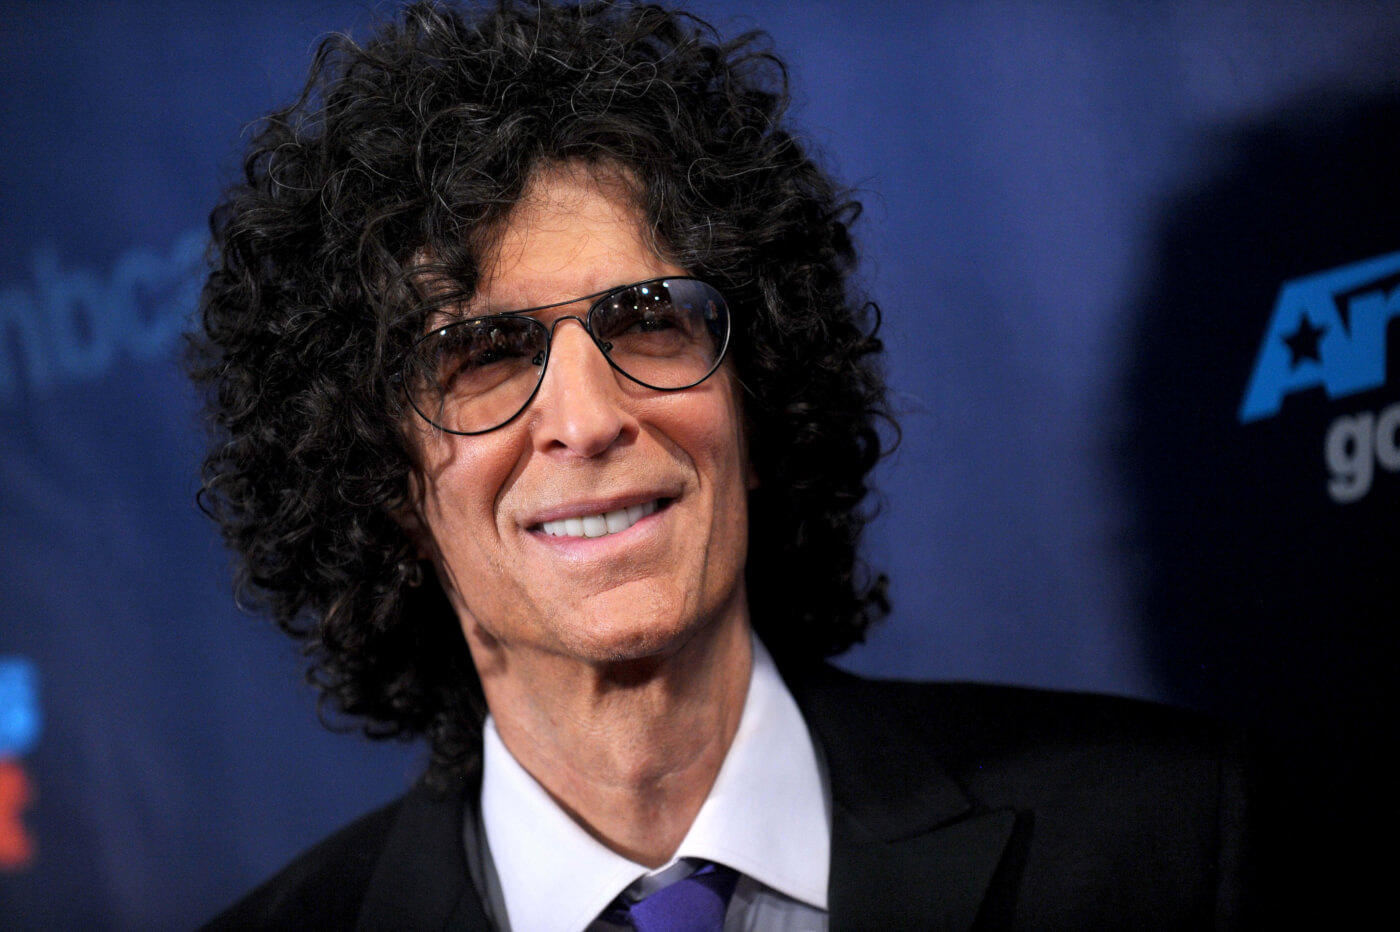 Howard Stern earned a 95 million dollar salary, leaving the net worth at 550 million in 2017